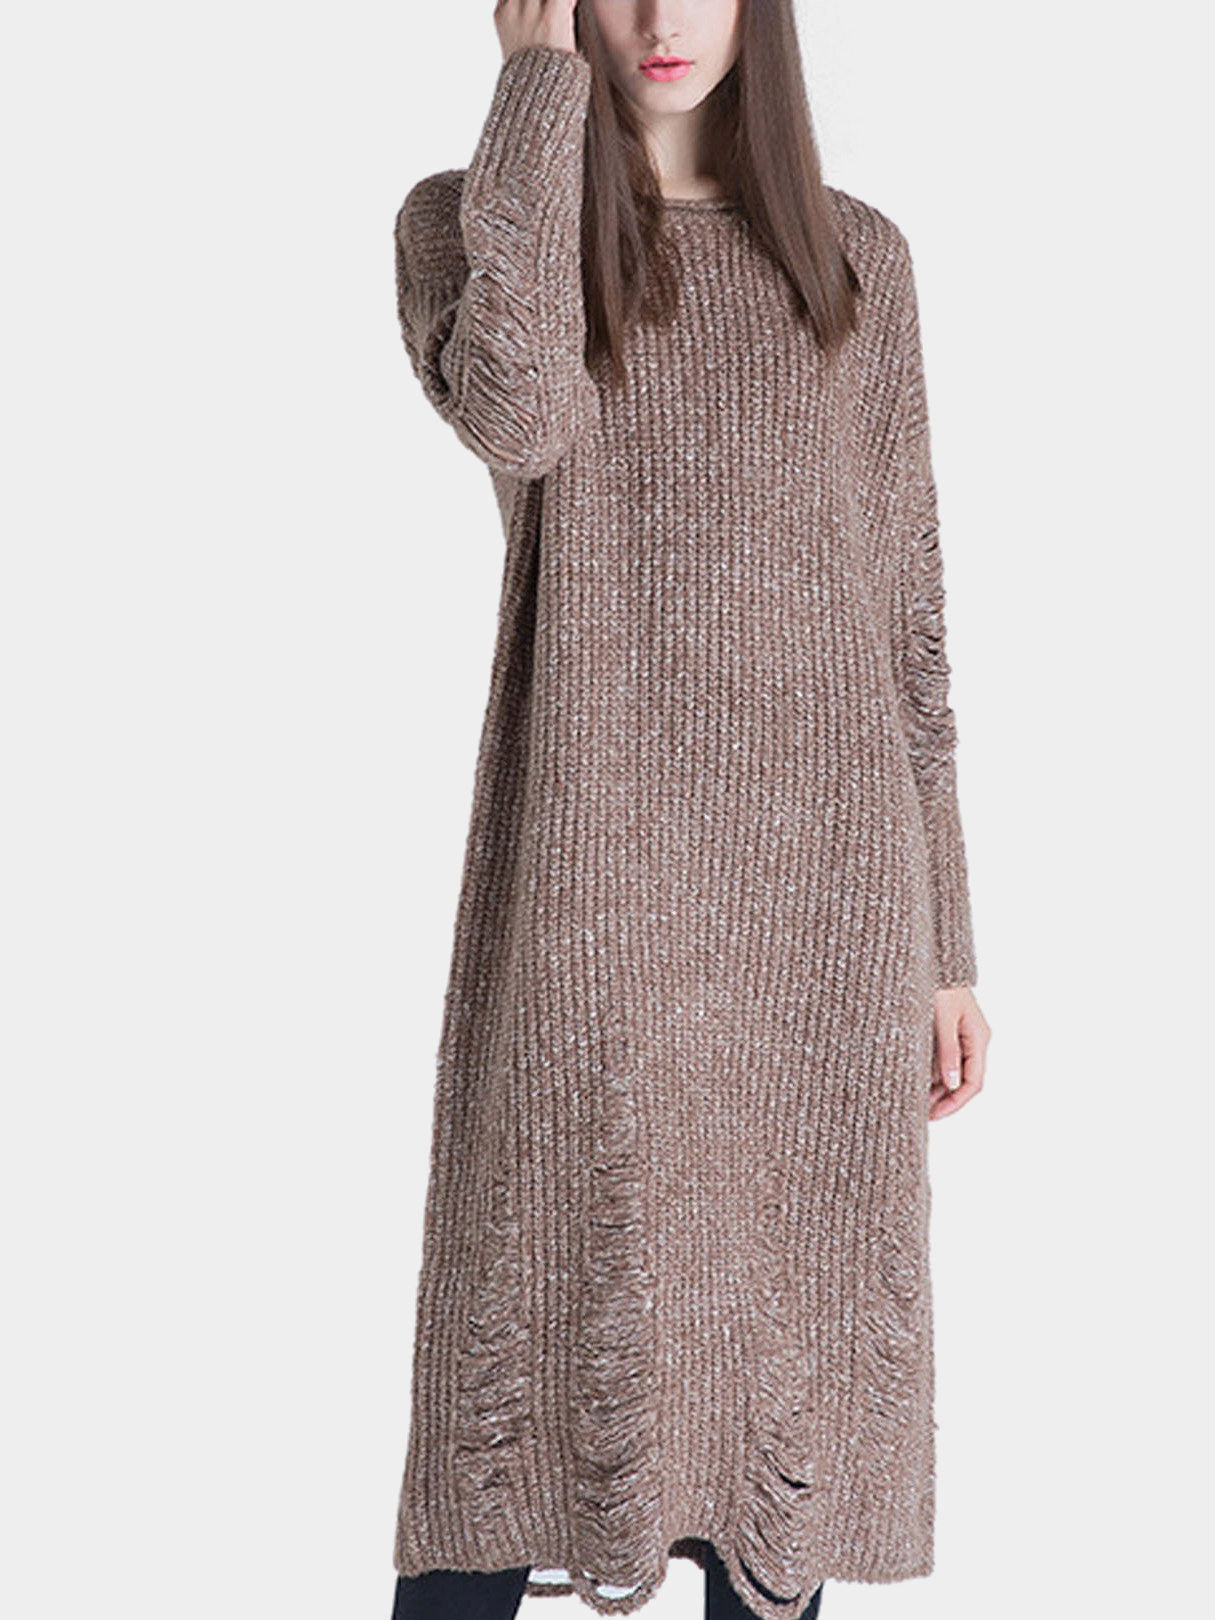 Tan Knitted MIdi Dress with Shredded Rips